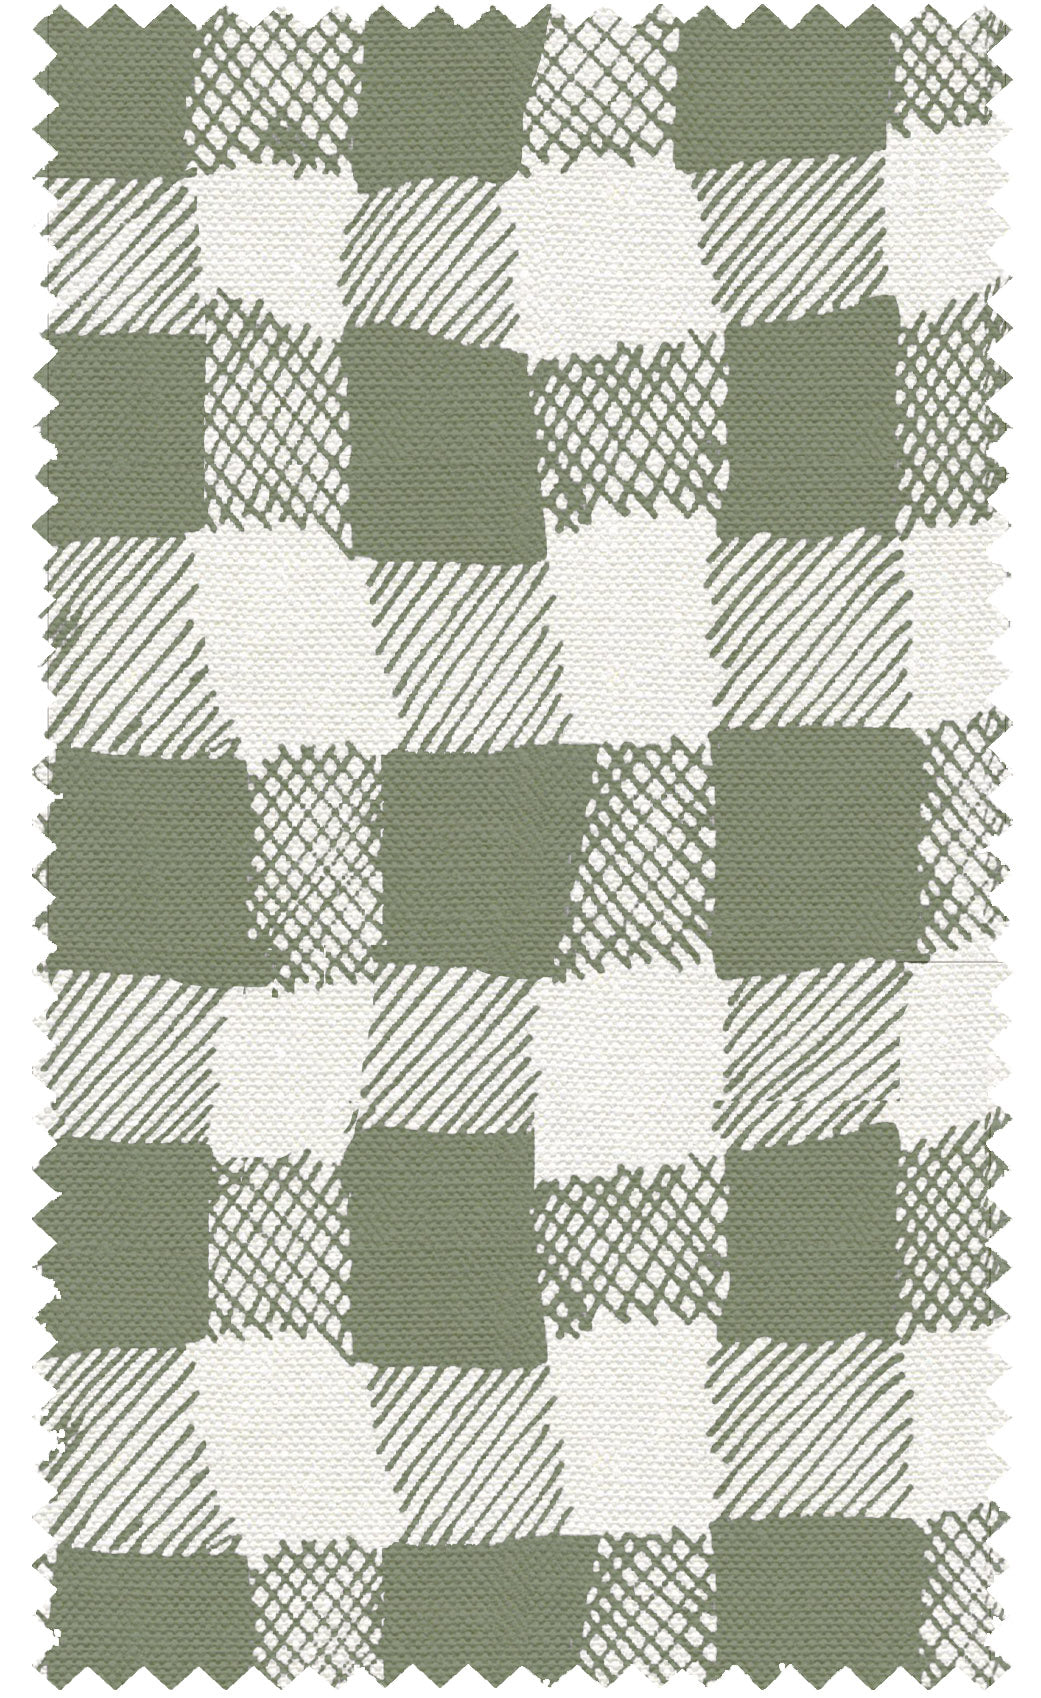 Gingham Co-Ordinate Linen Fabric Olive